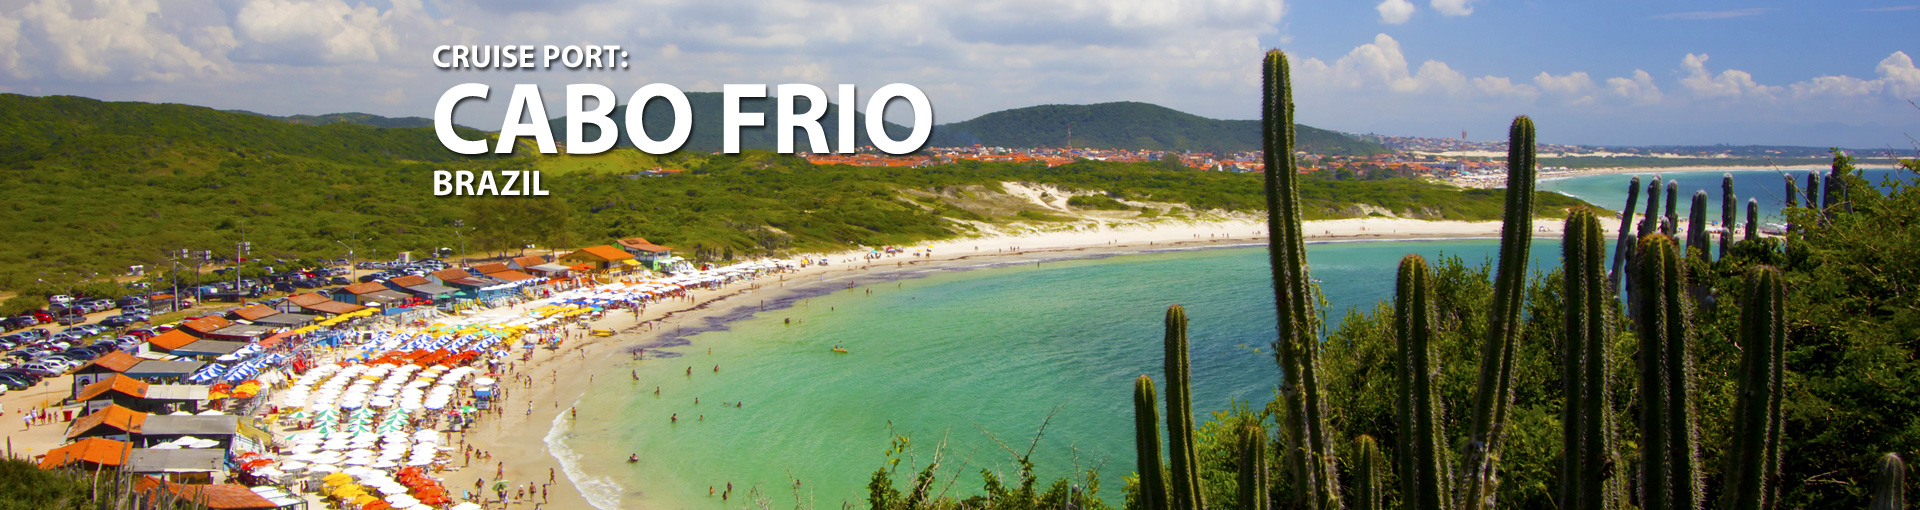 Cruises to Cabo Frio, Brazil